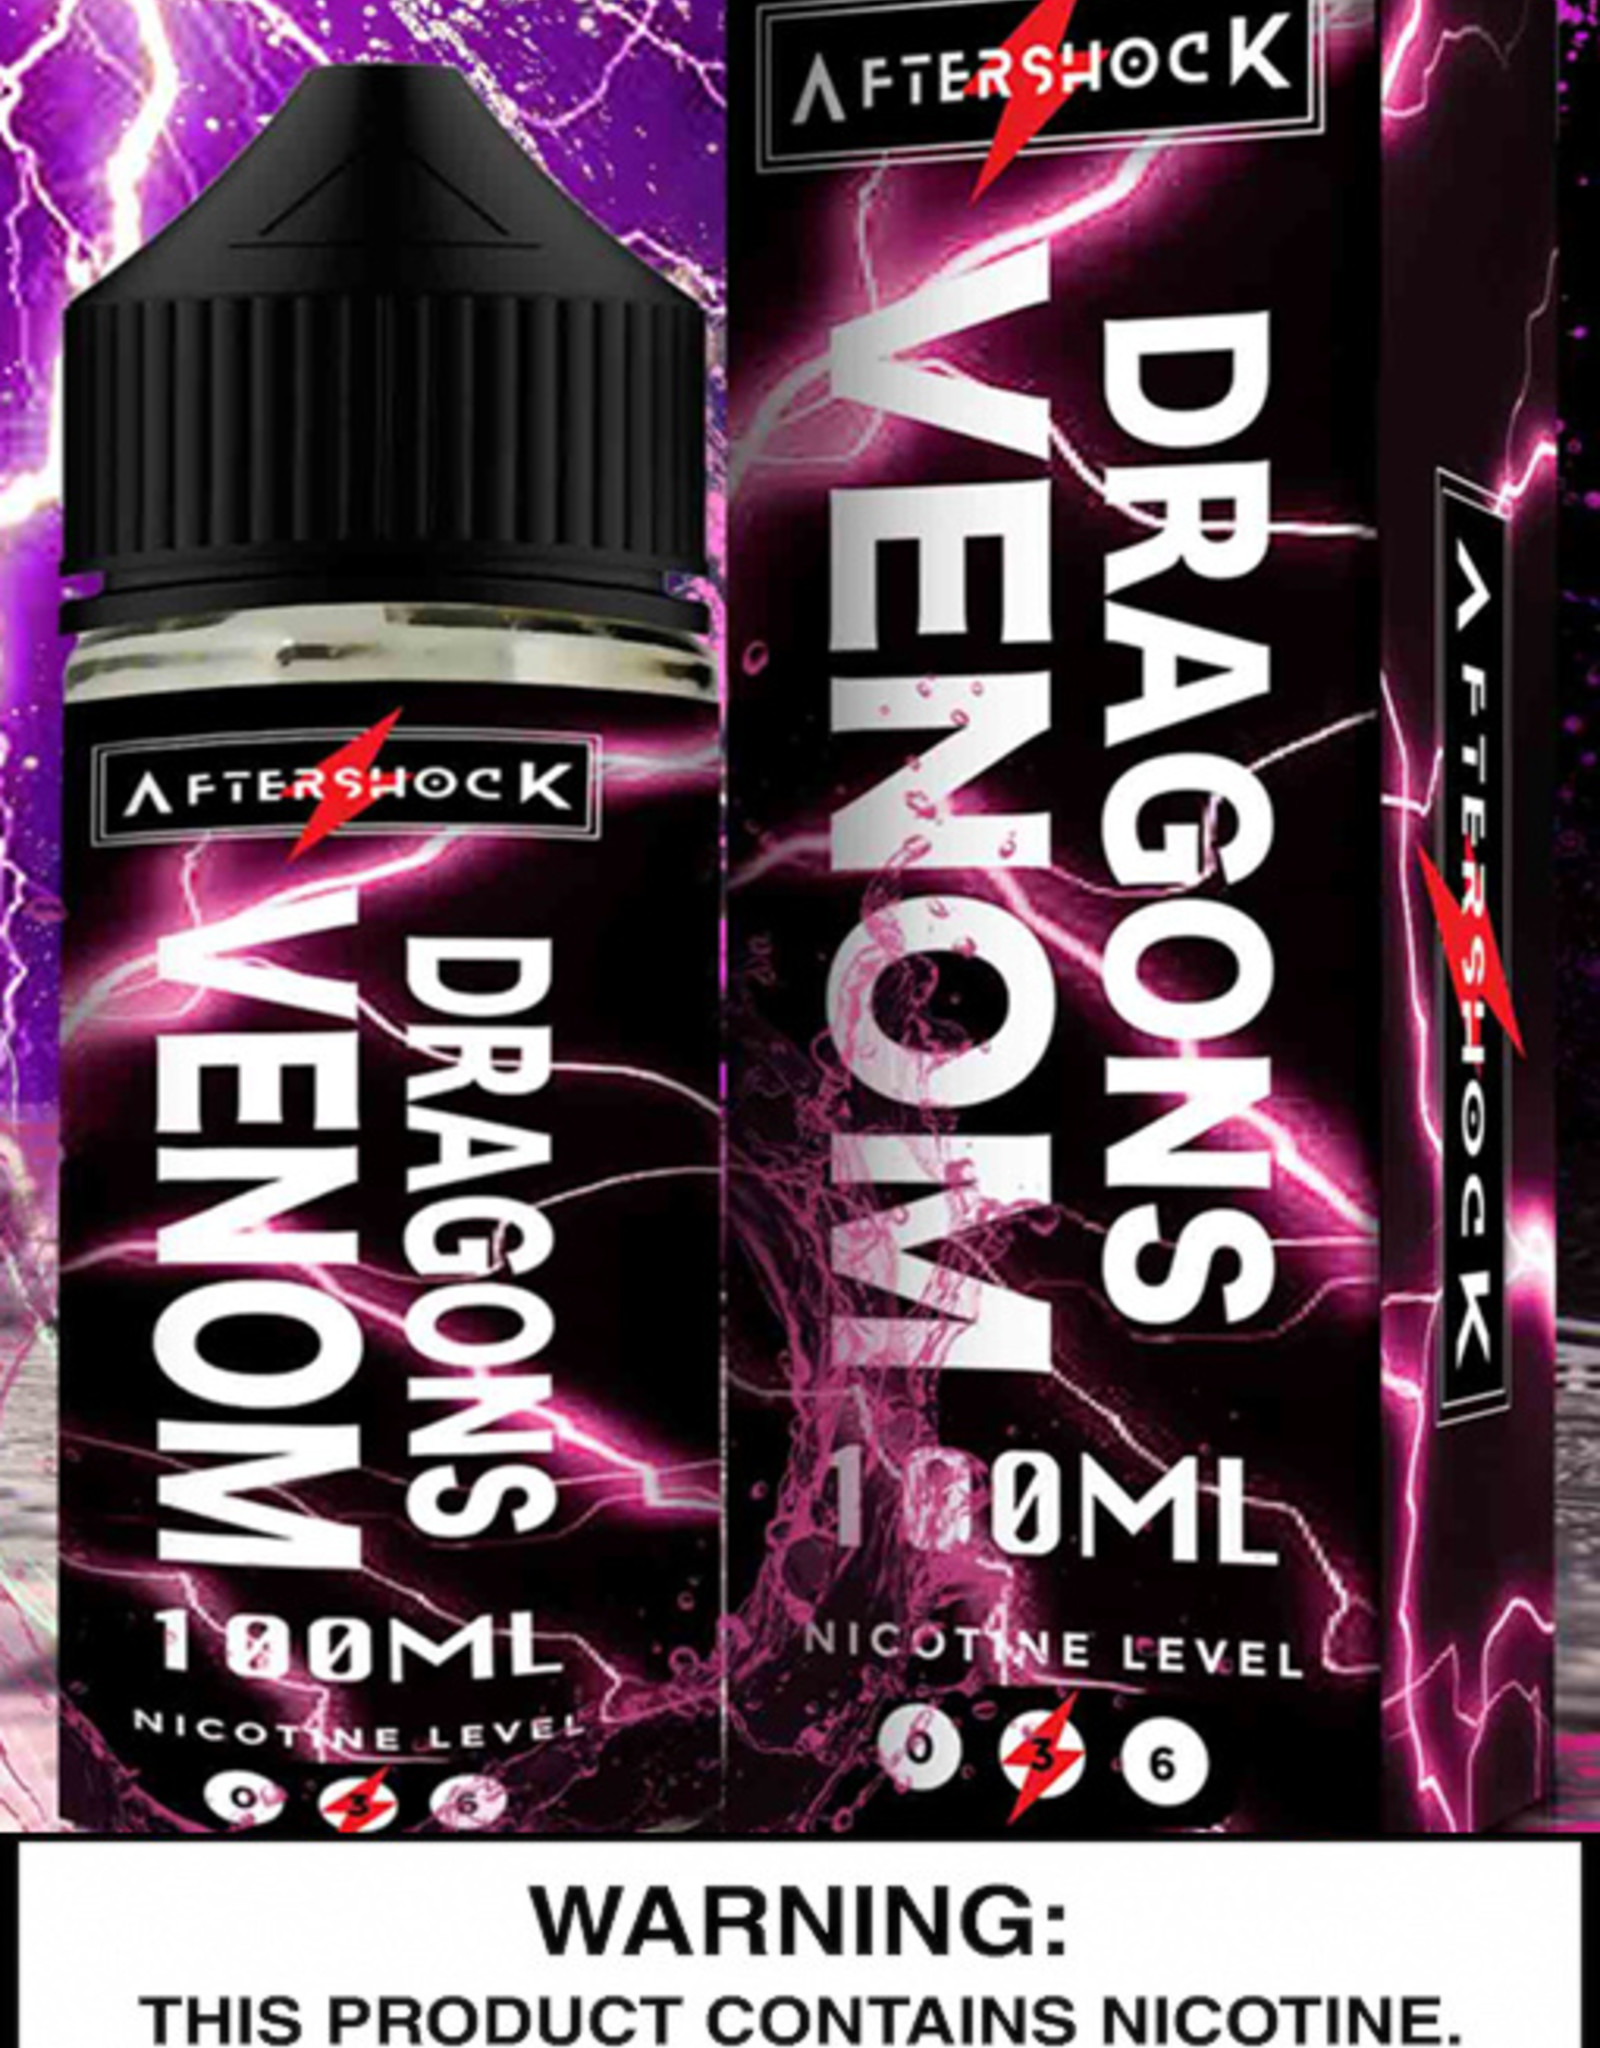 Aftershock Dragons Venom By Aftershock